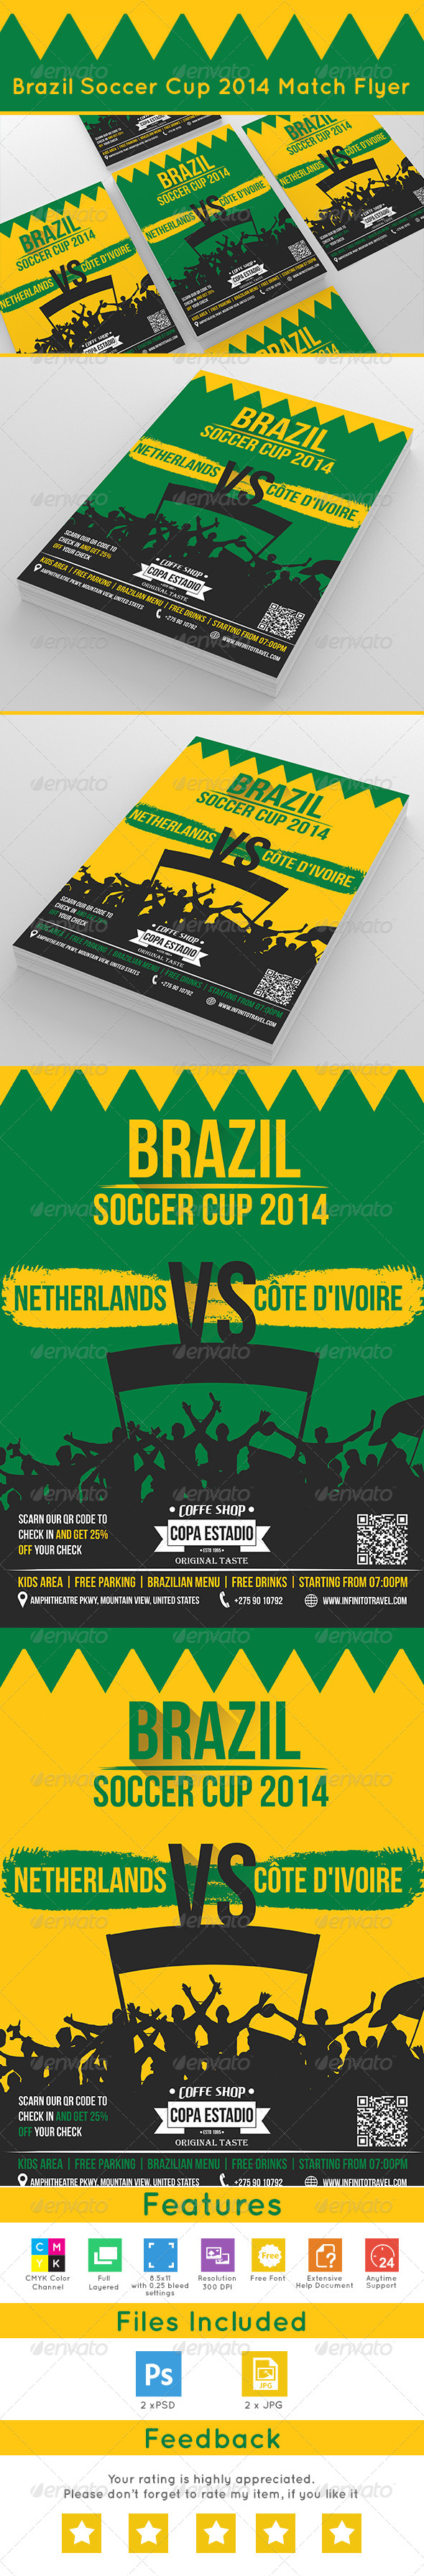 GraphicRiver Brazil Soccer Cup 2014 Match Flyer 7735247